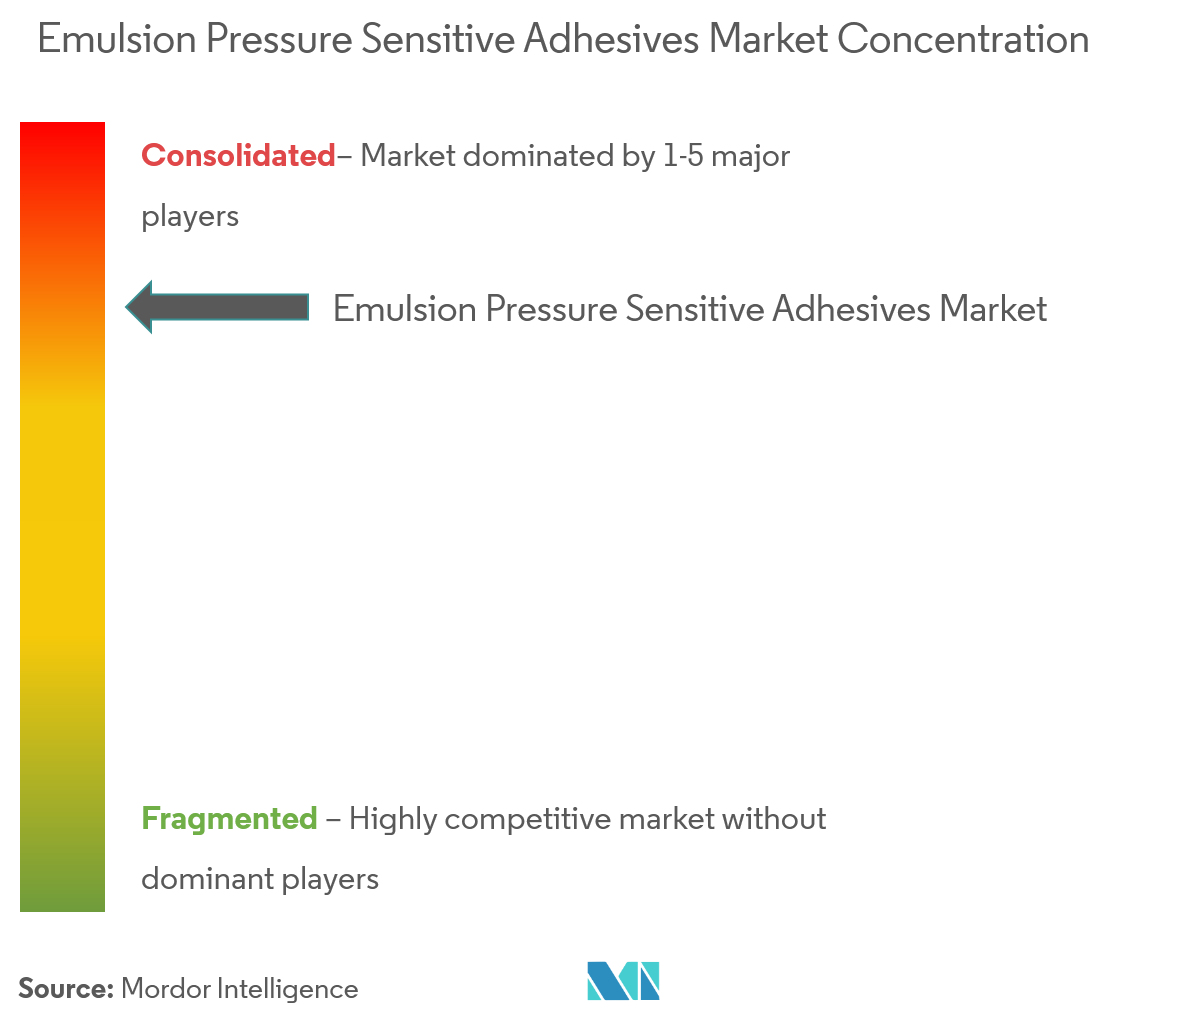 Emulsion Pressure Sensitive Adhesives Market - Market Concentration